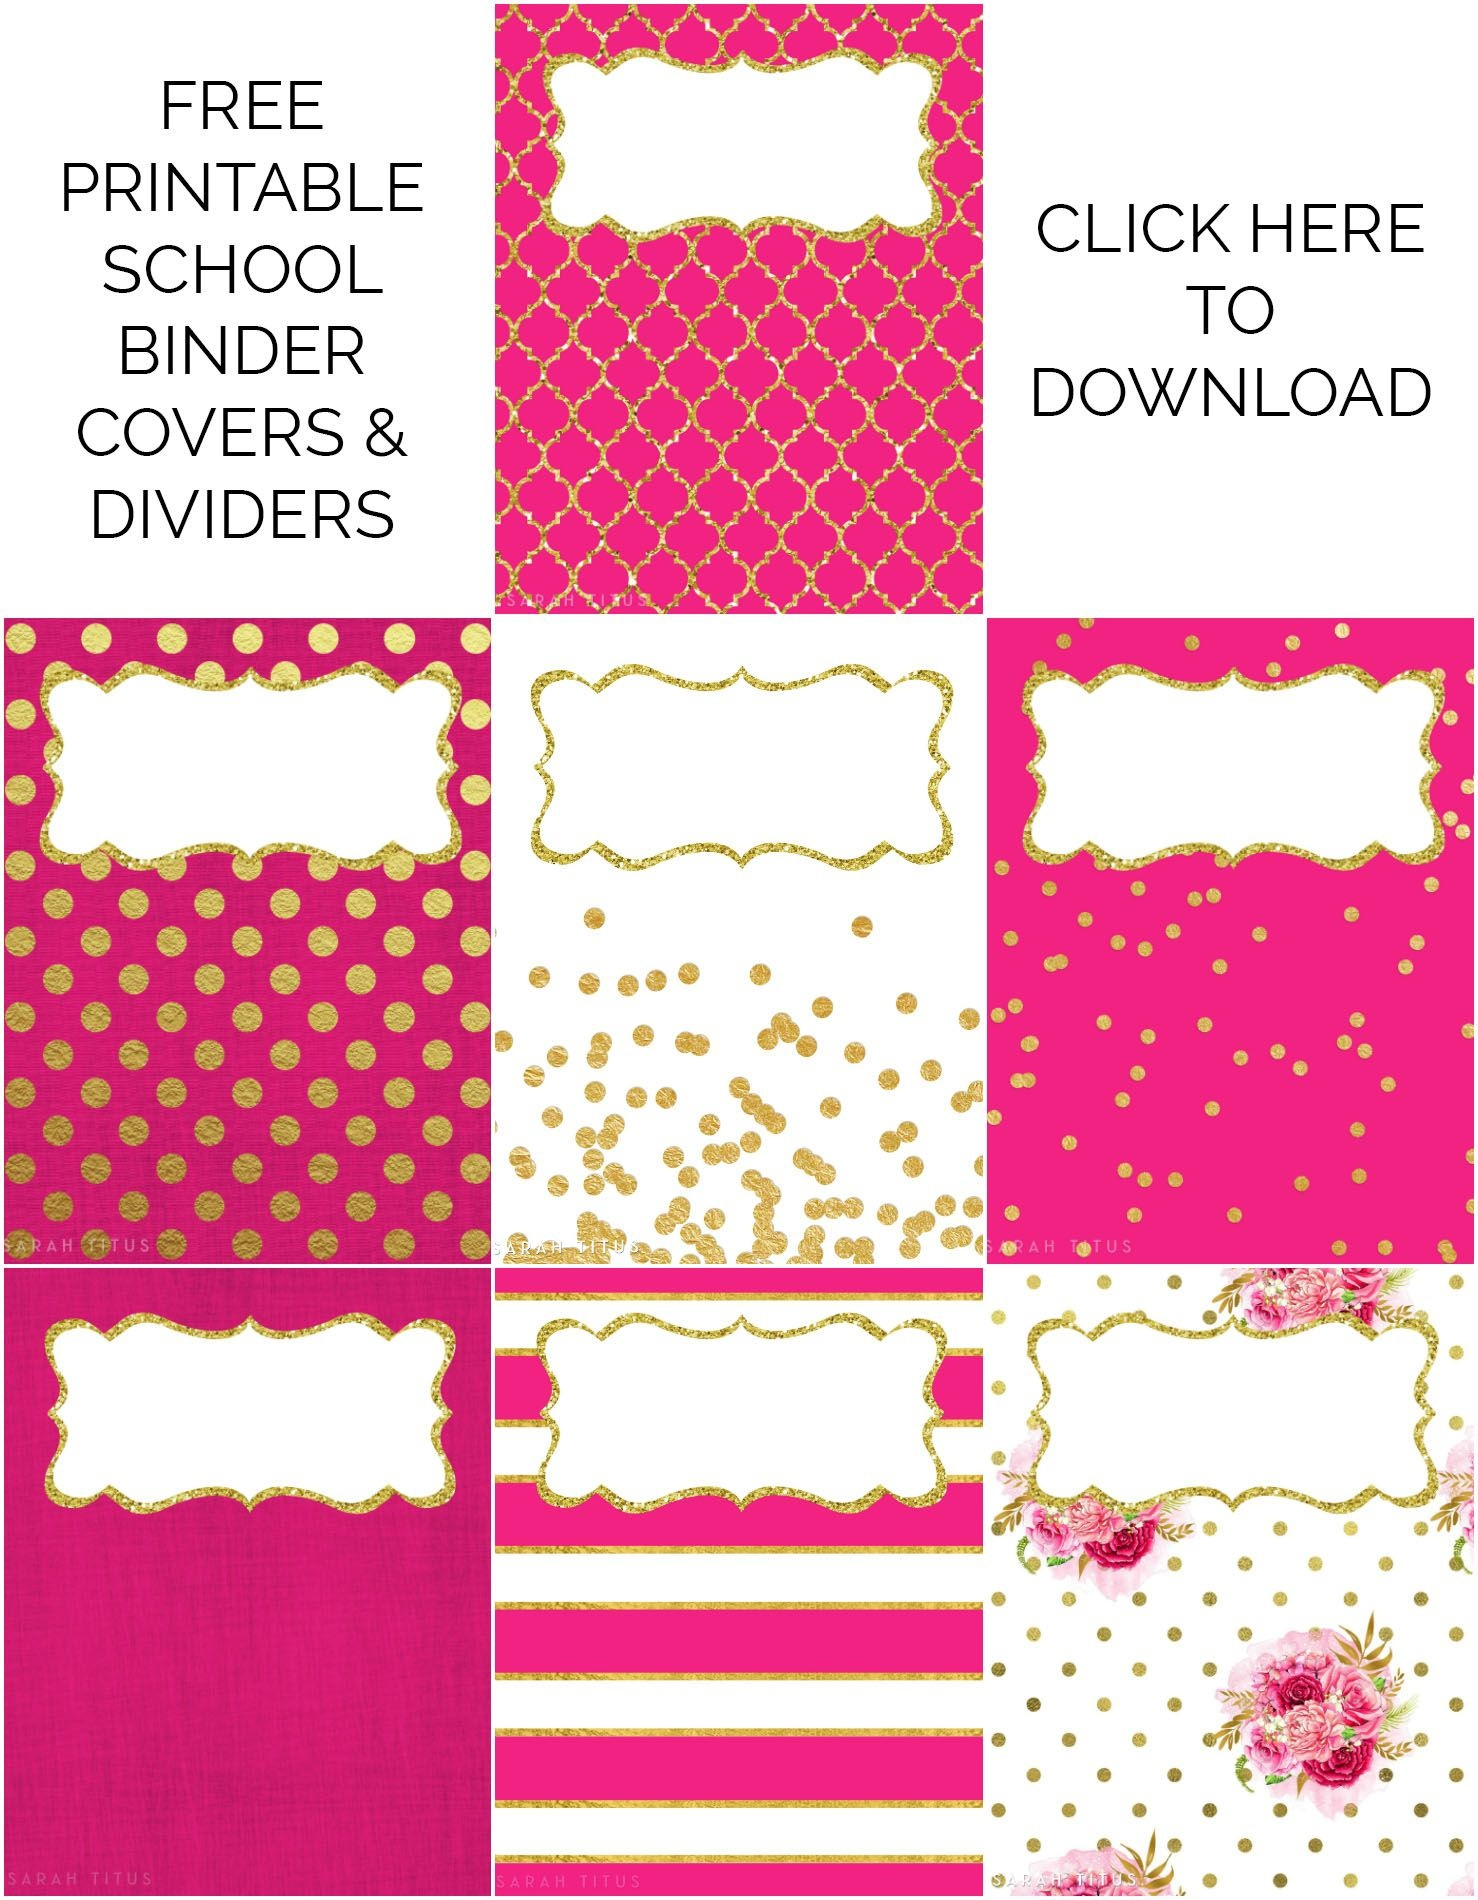 Binder Covers / Dividers Free Printables | Plans | Binder Covers - Free Printable Dividers